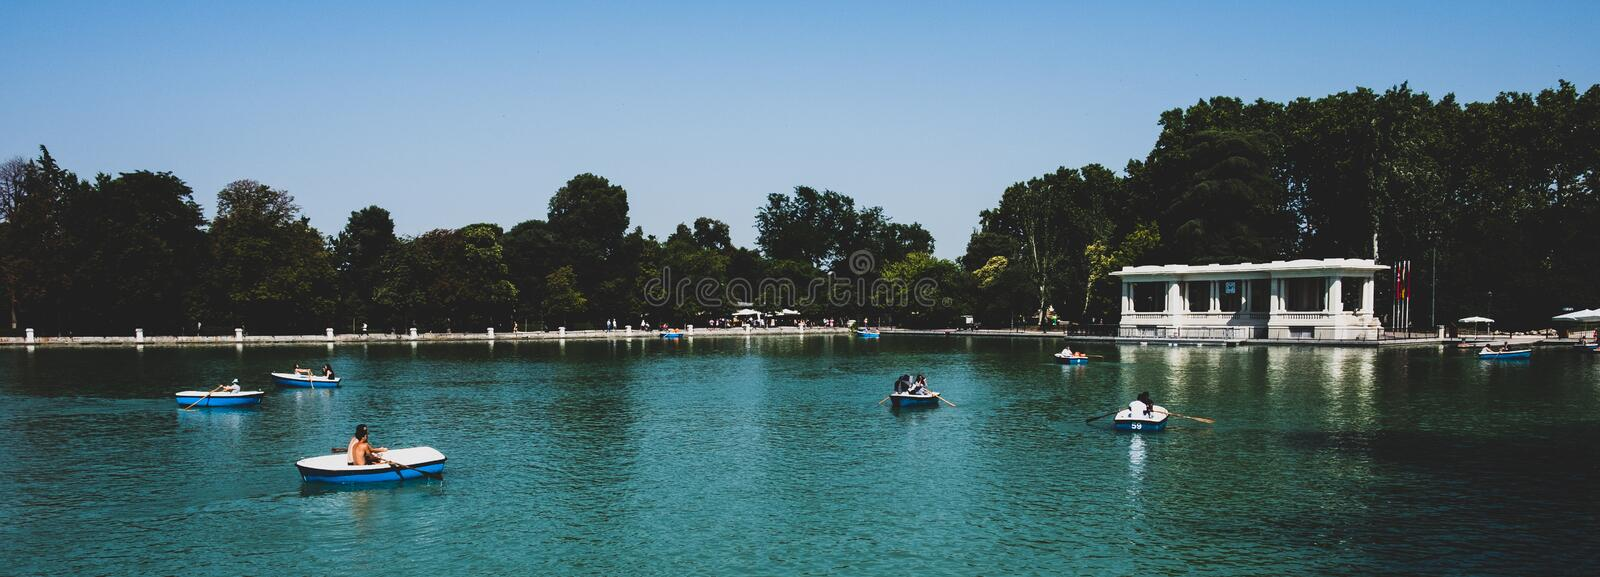 Madrid 2018 - People in boats in a lake in a public park royalty free stock images